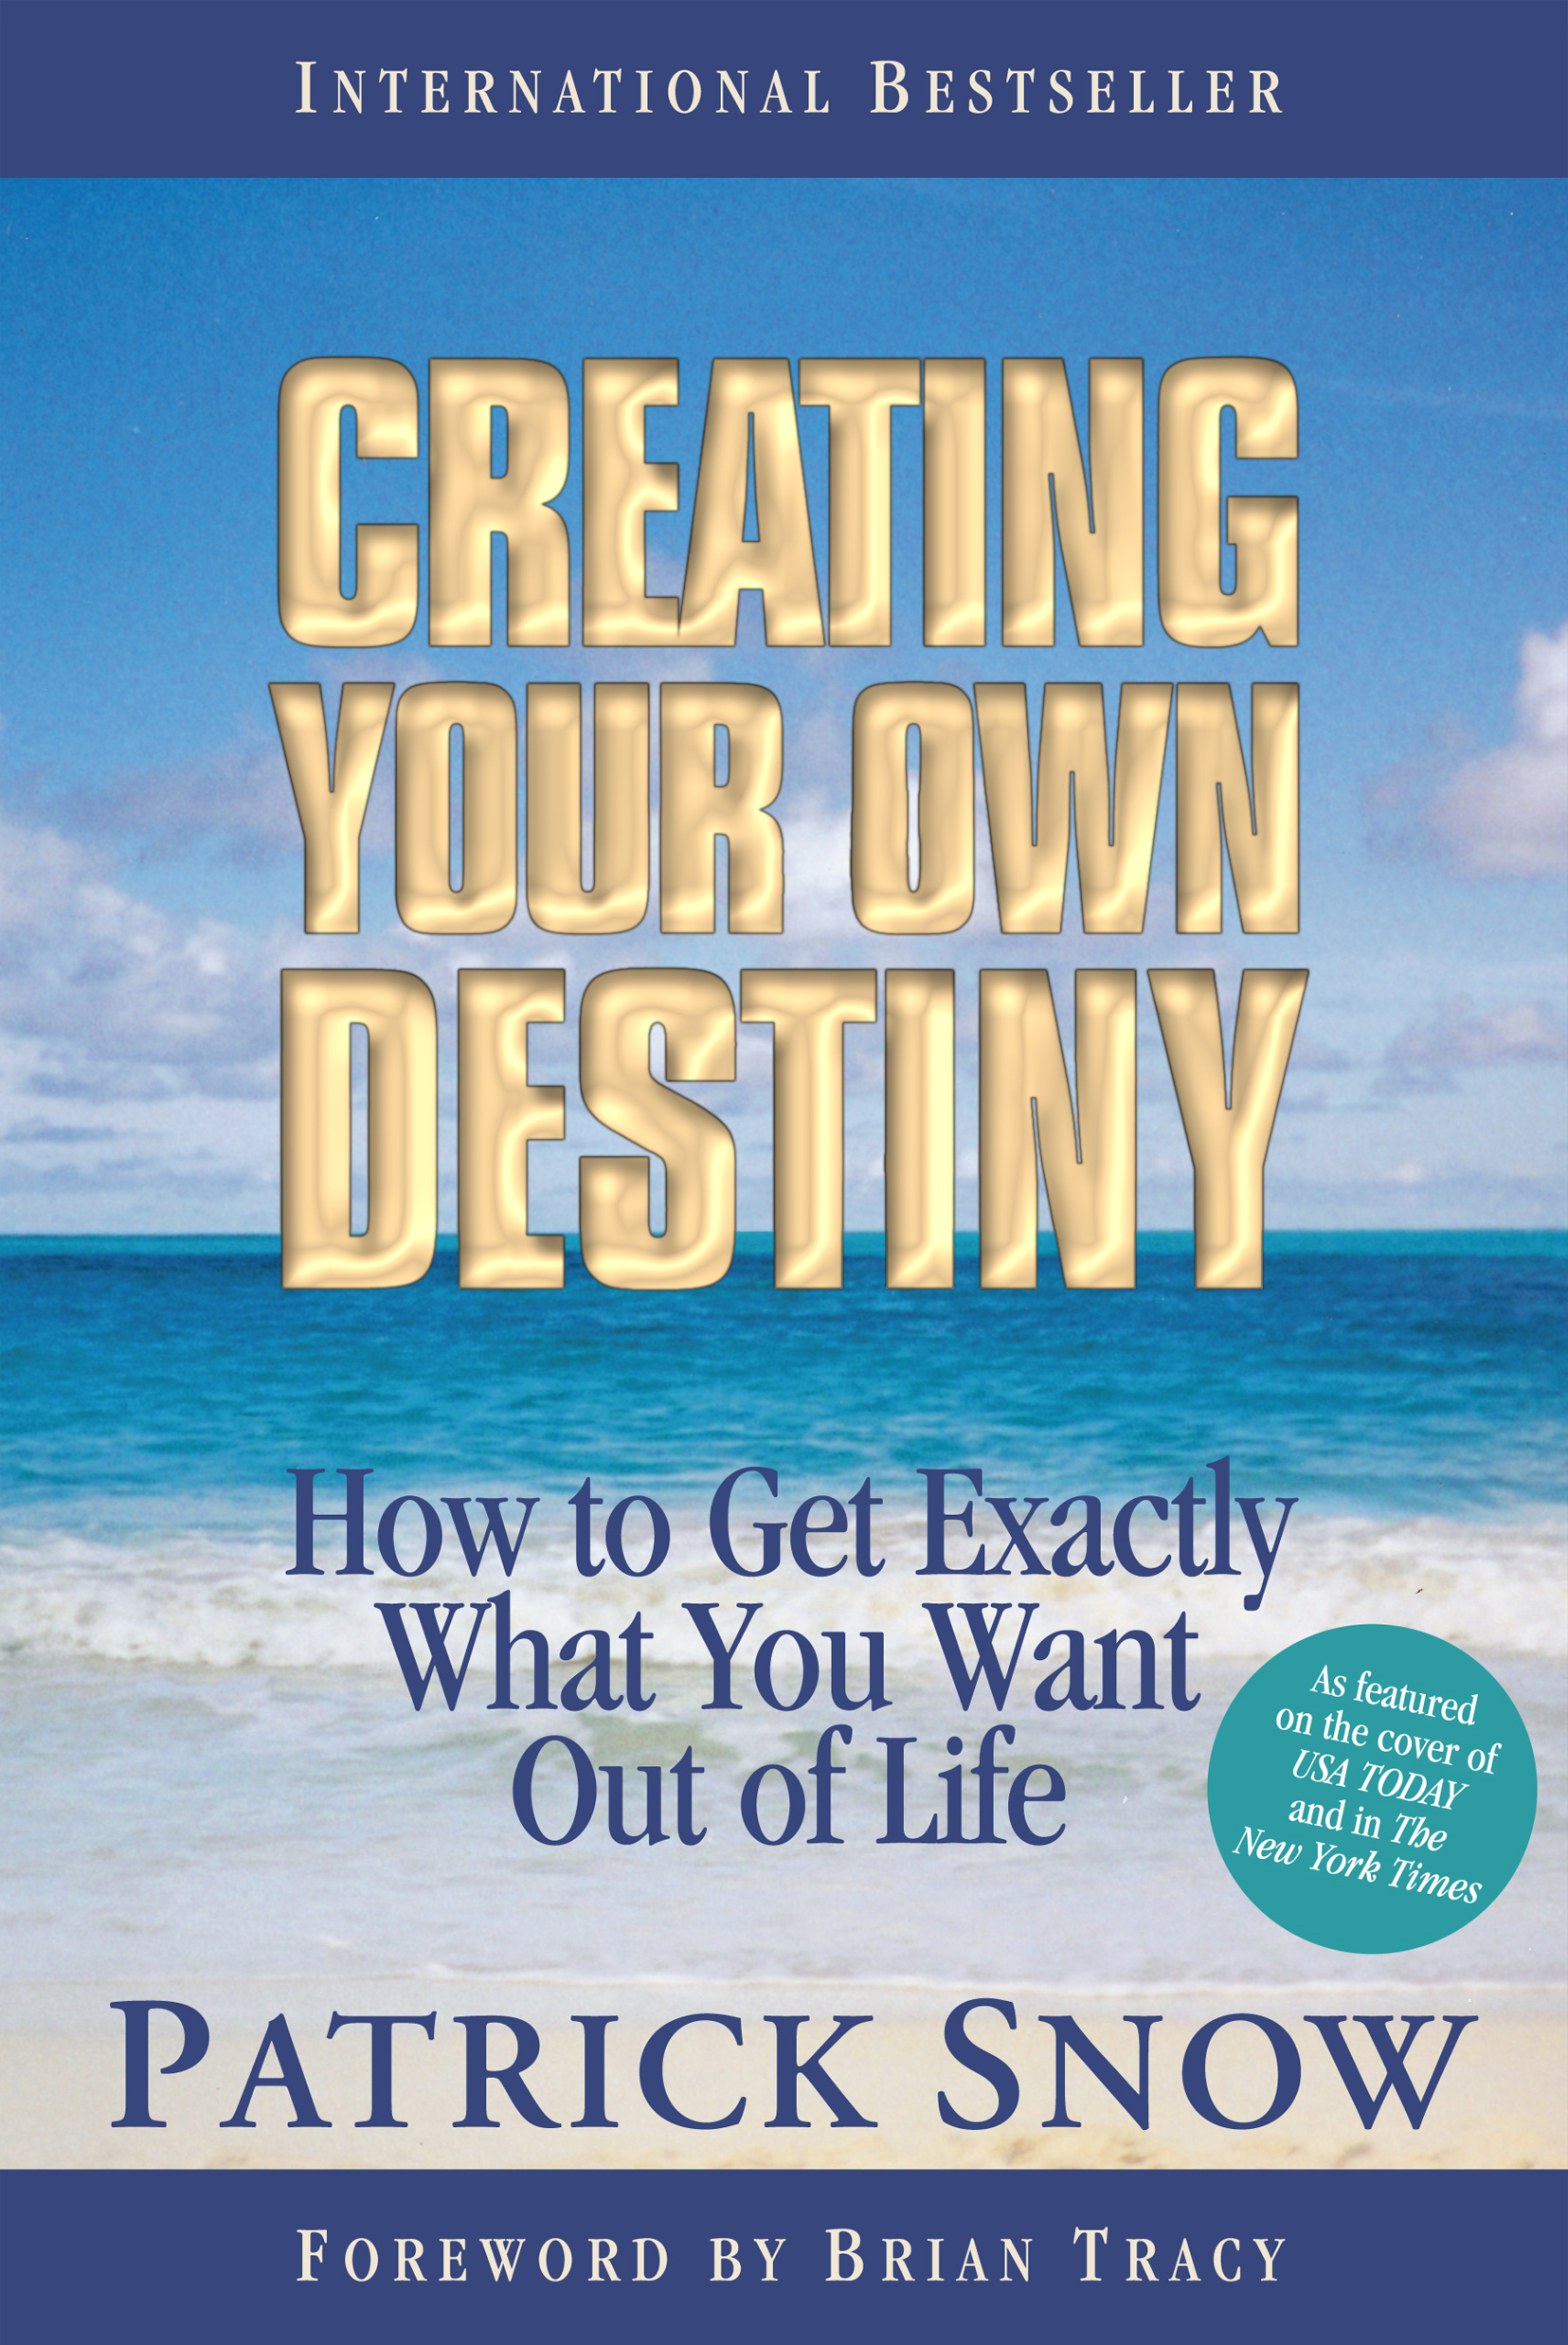 Book Cover Design Your Own ~ Welcome to createyourowndestiny